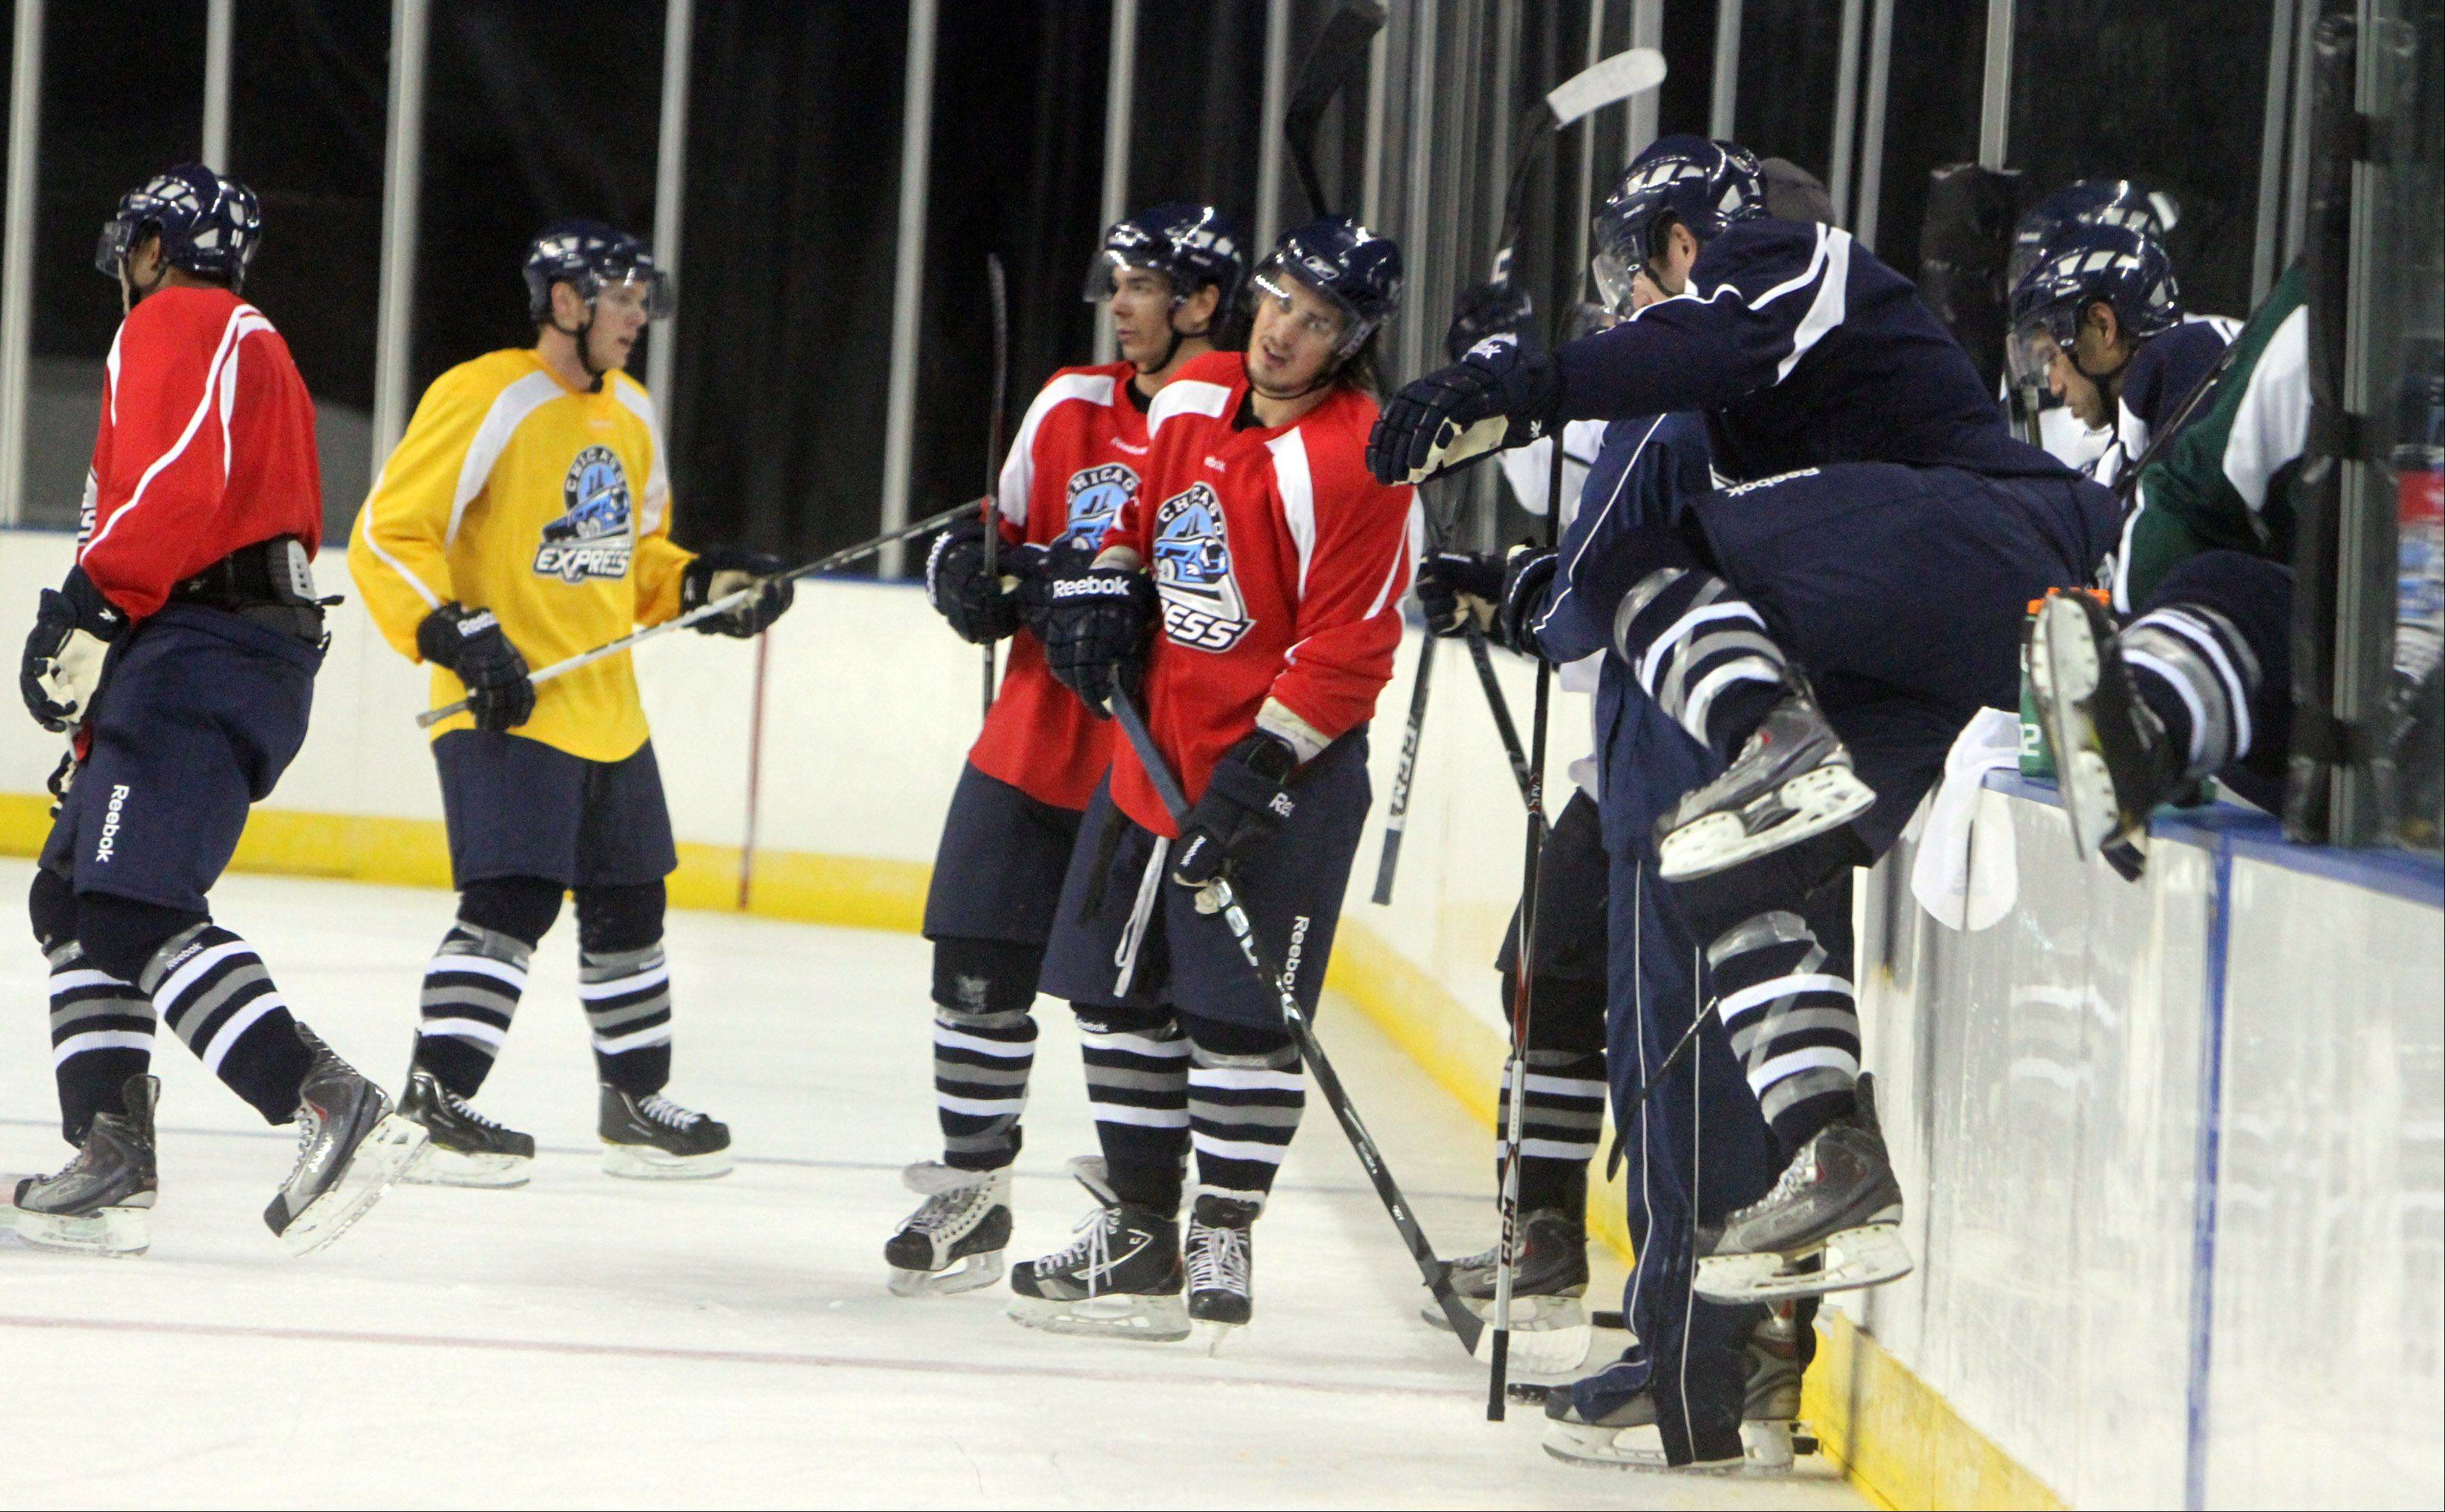 Members of the Chicago Express change lines during practice.